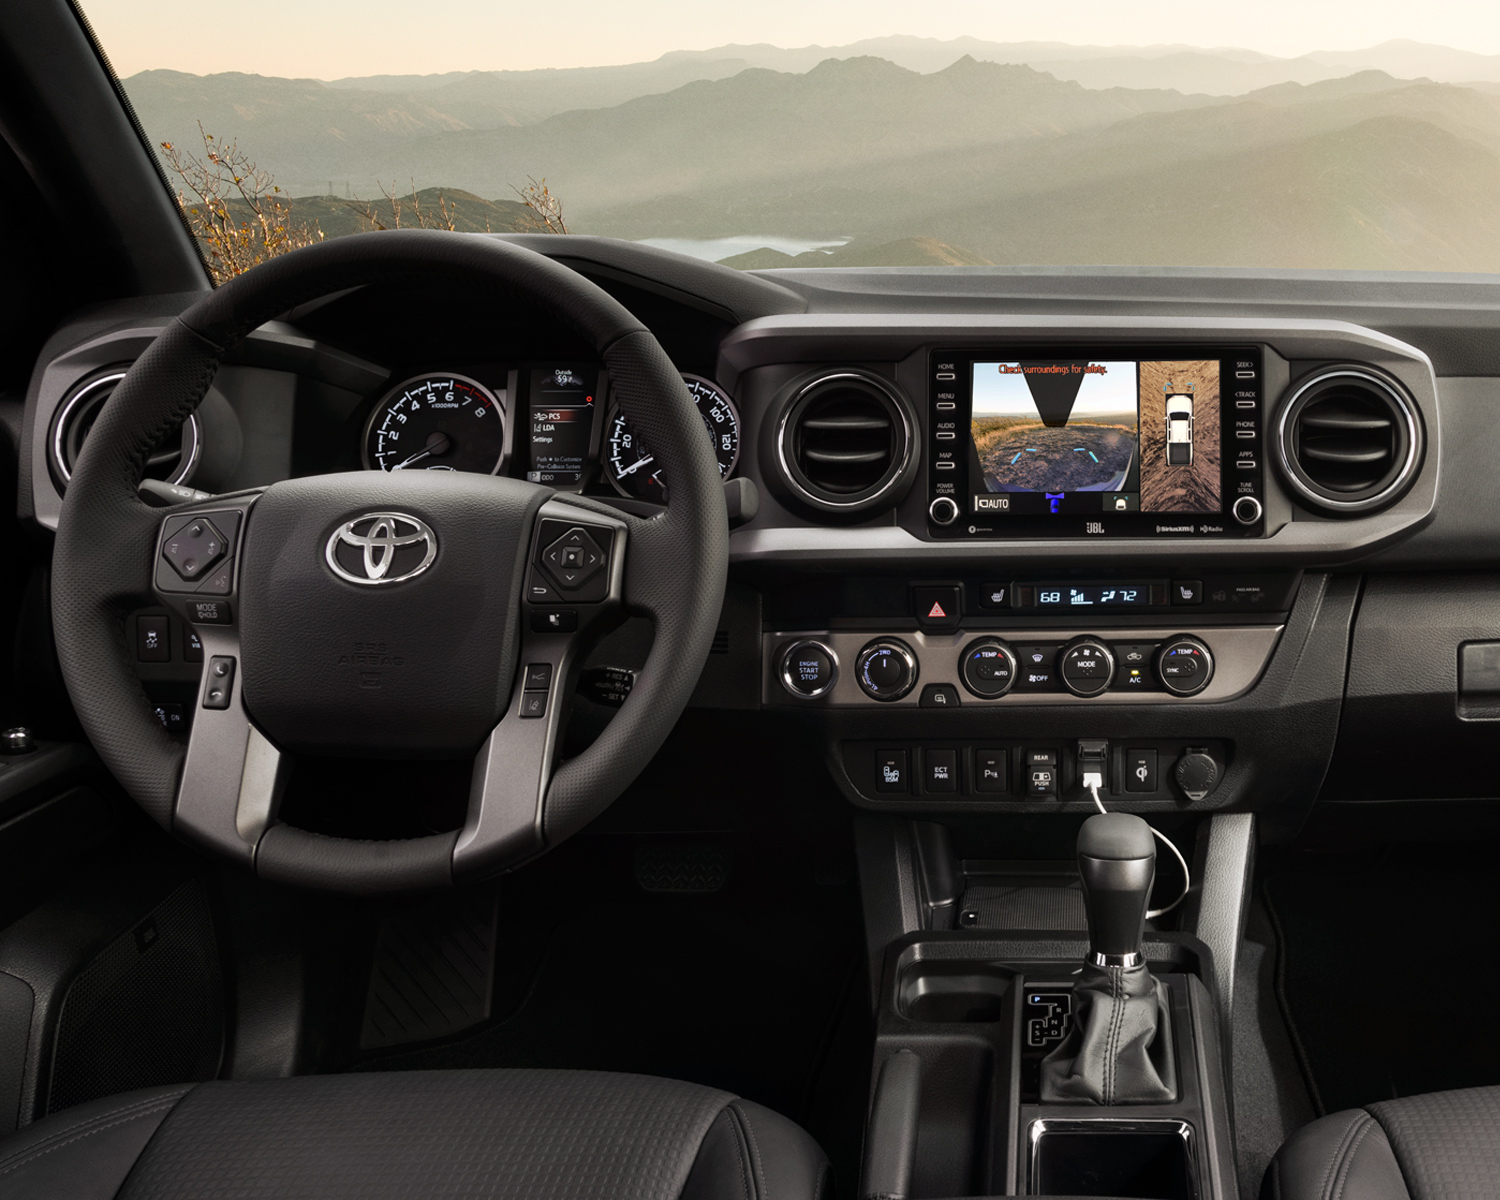 Tacoma TRD Off Road Interior shown in Black Leather